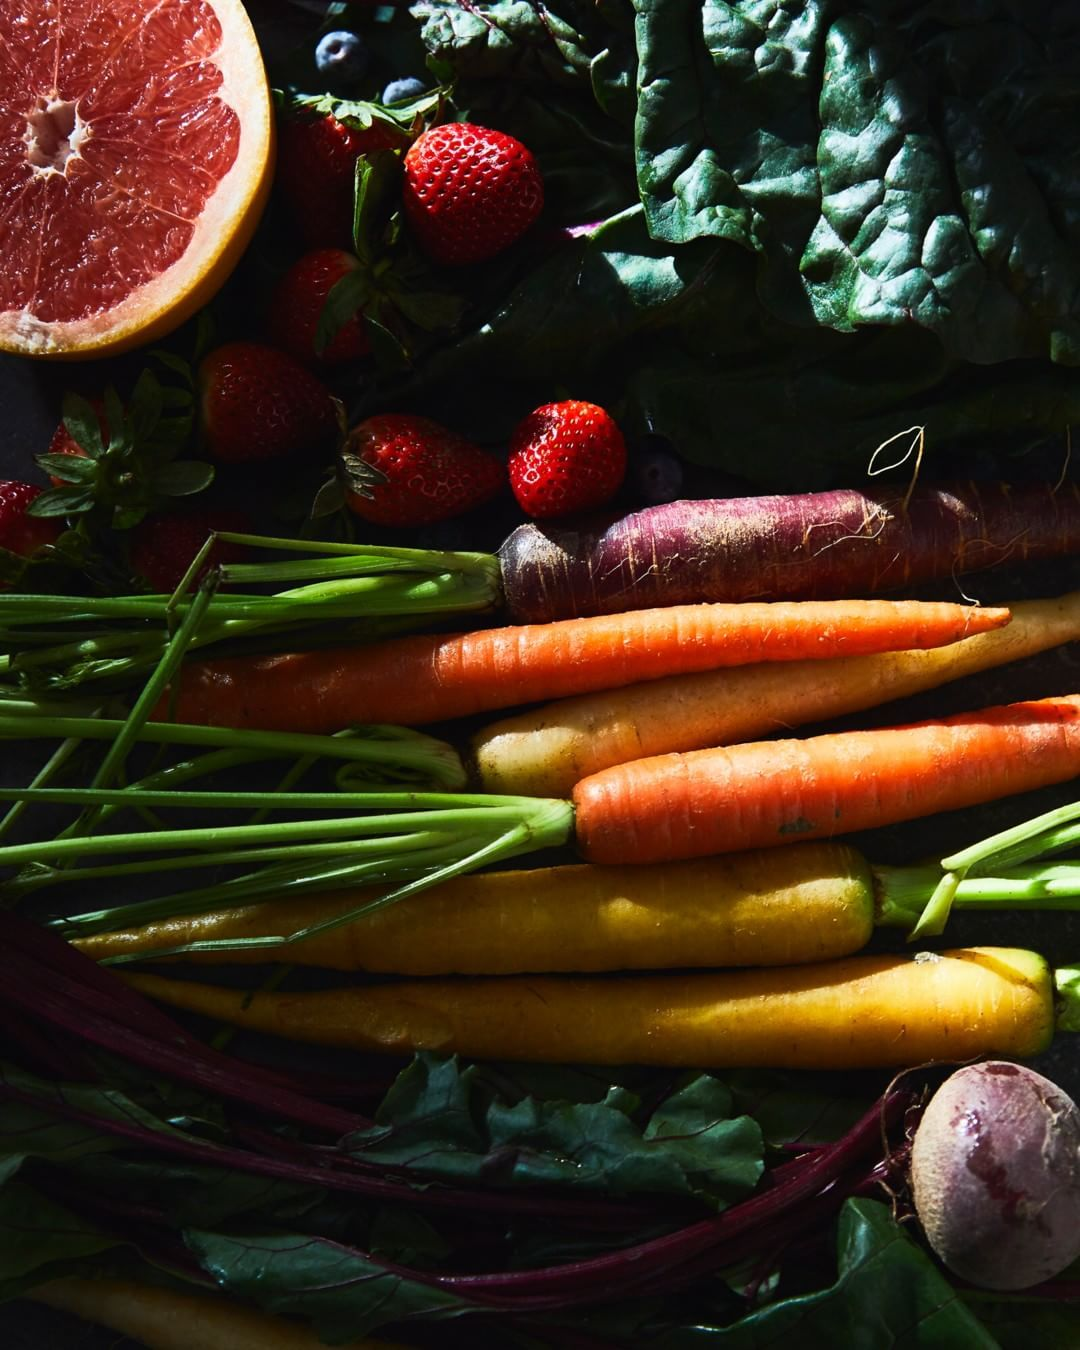 FOOD Eating seasonally is a great way to stay supported